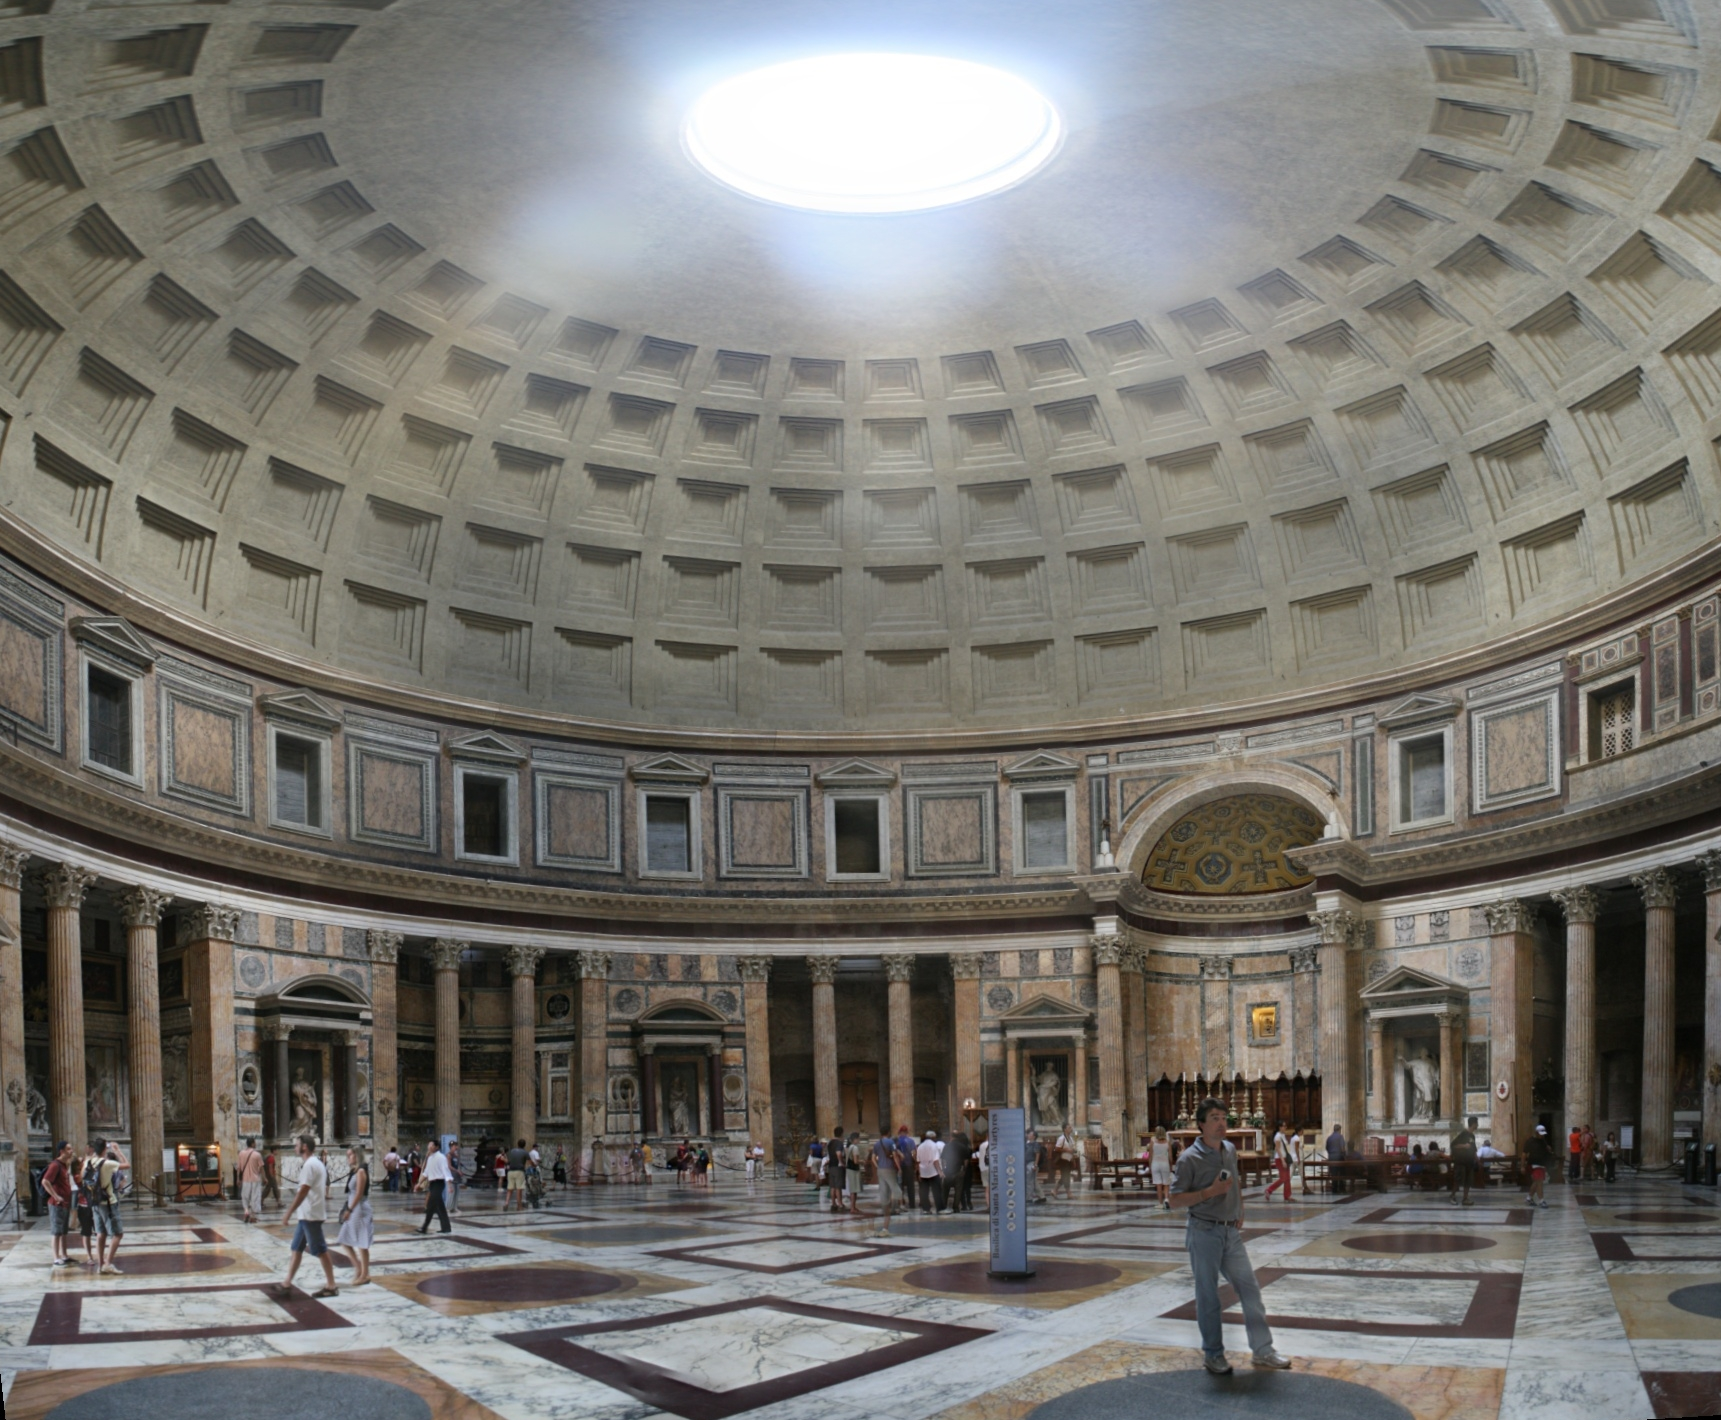 Panteon_inside_Rome_manlogic.ru